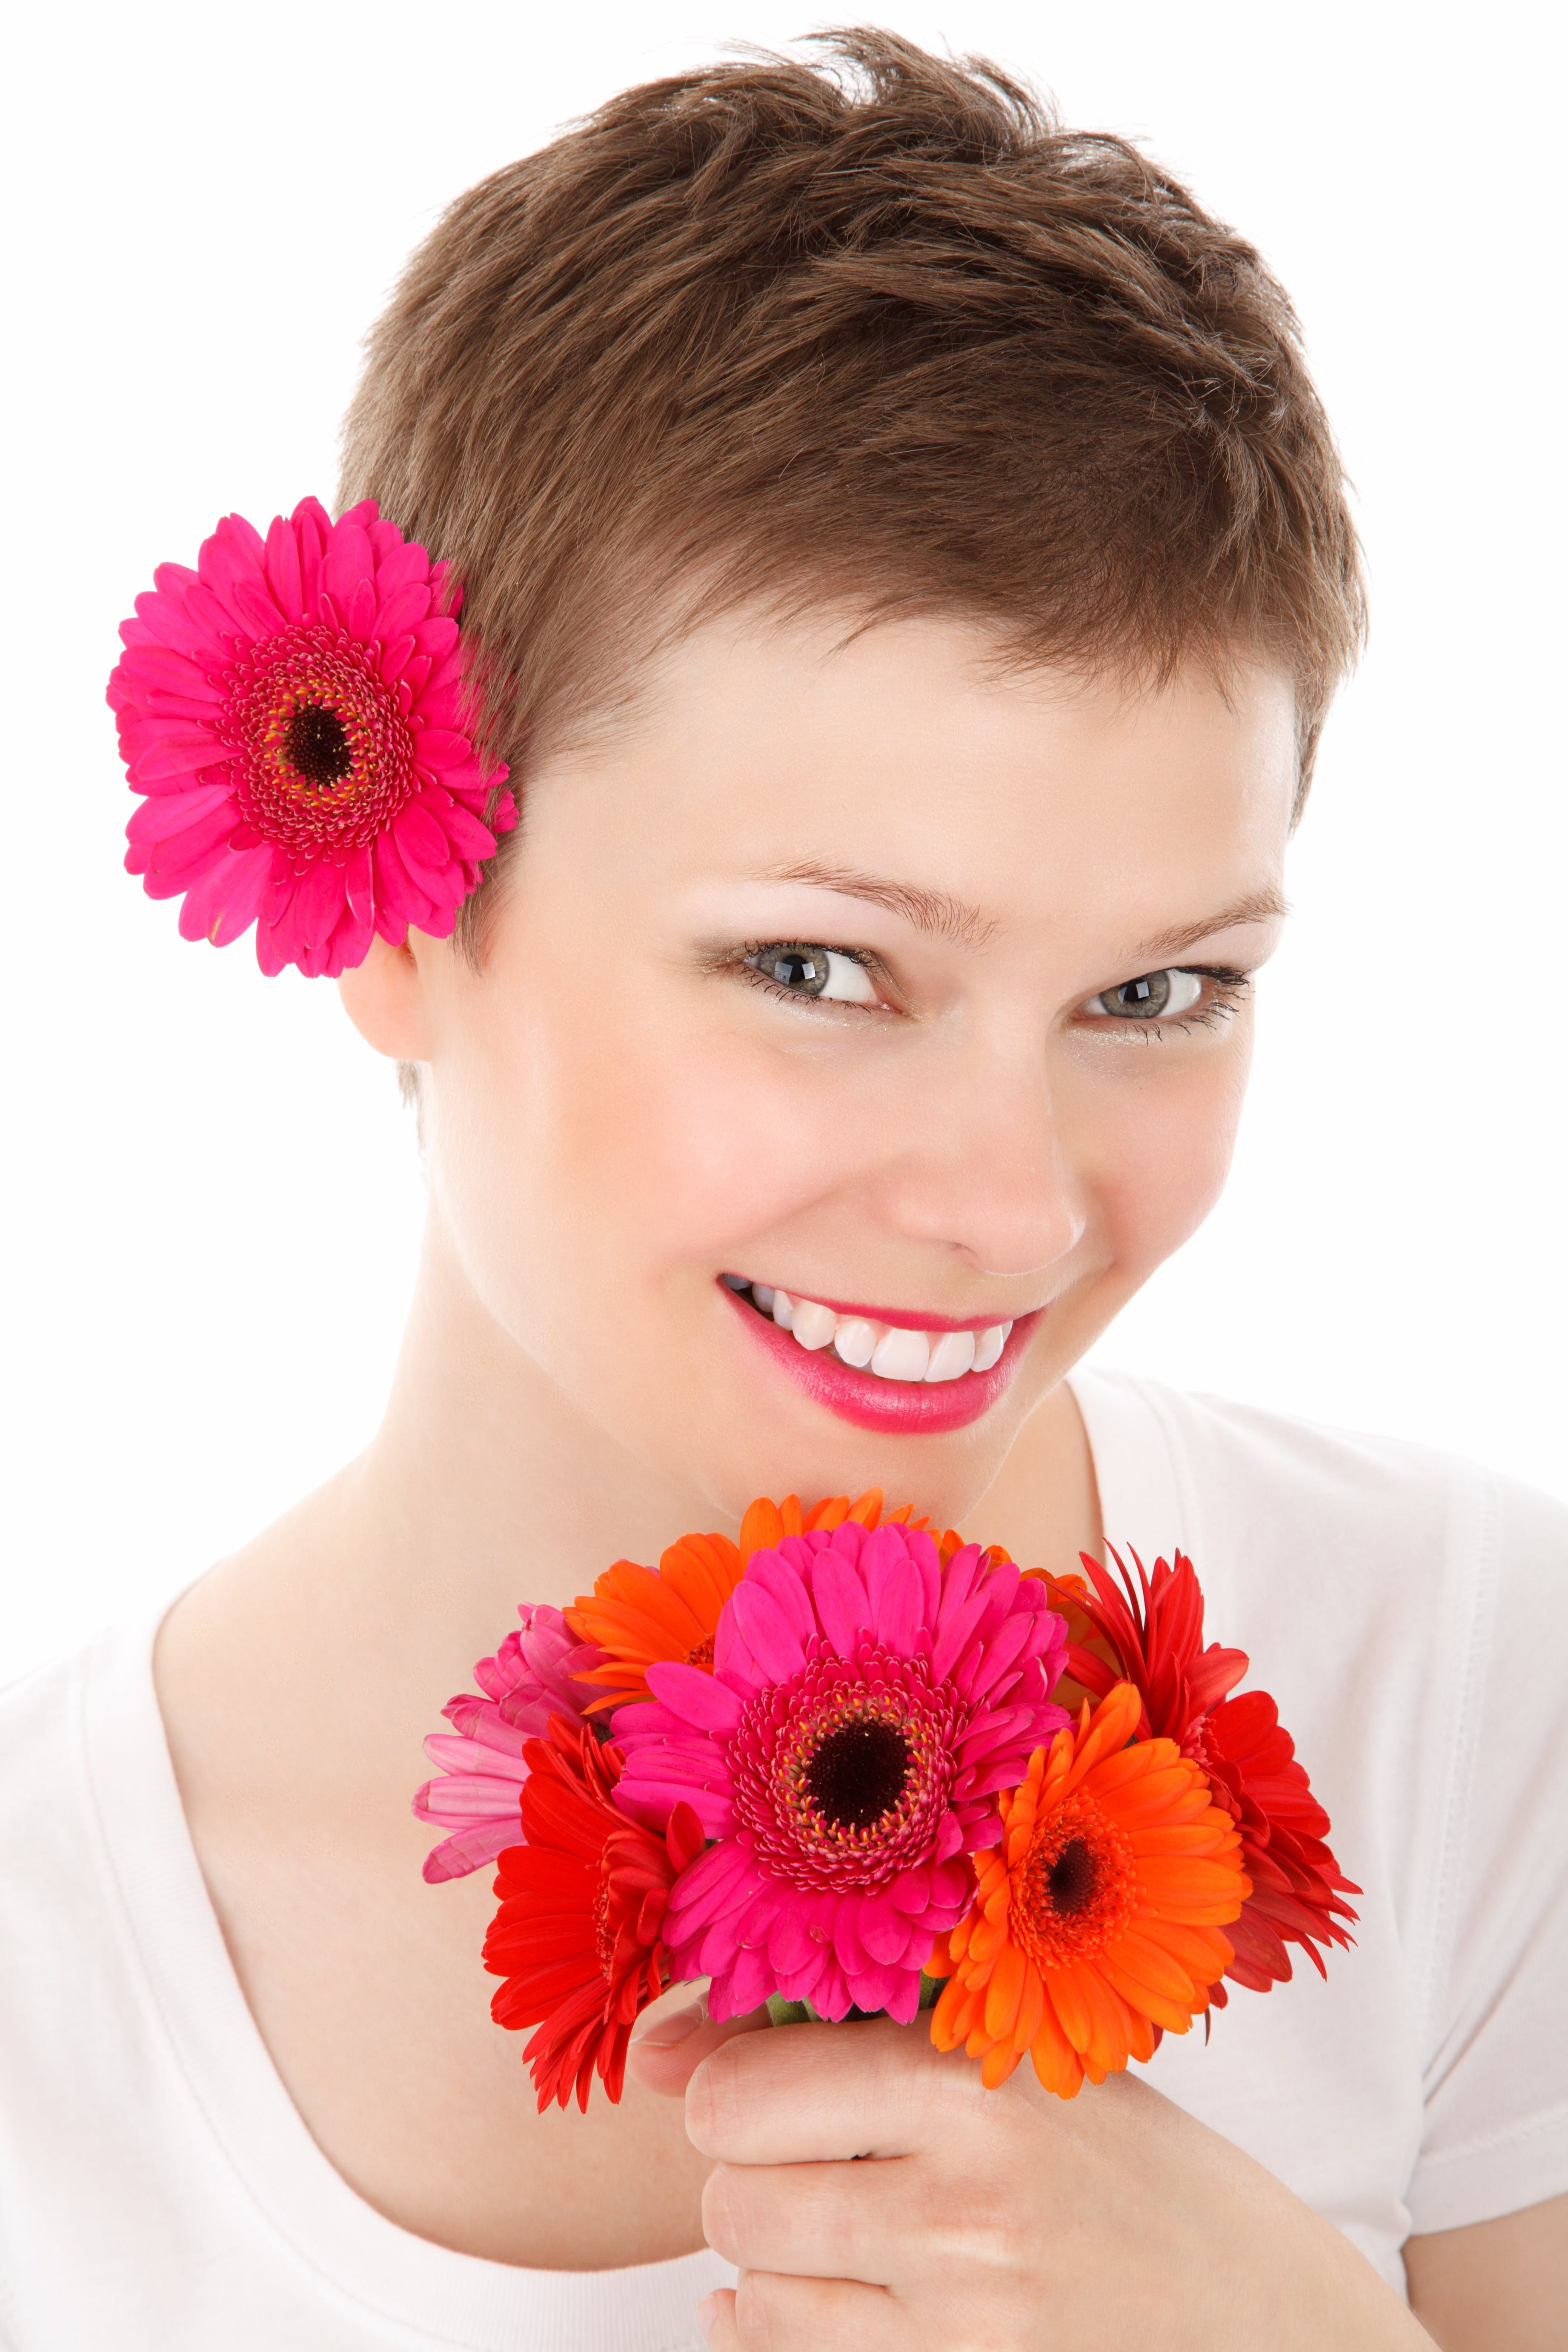 Woman Holding Flowers While Smiling